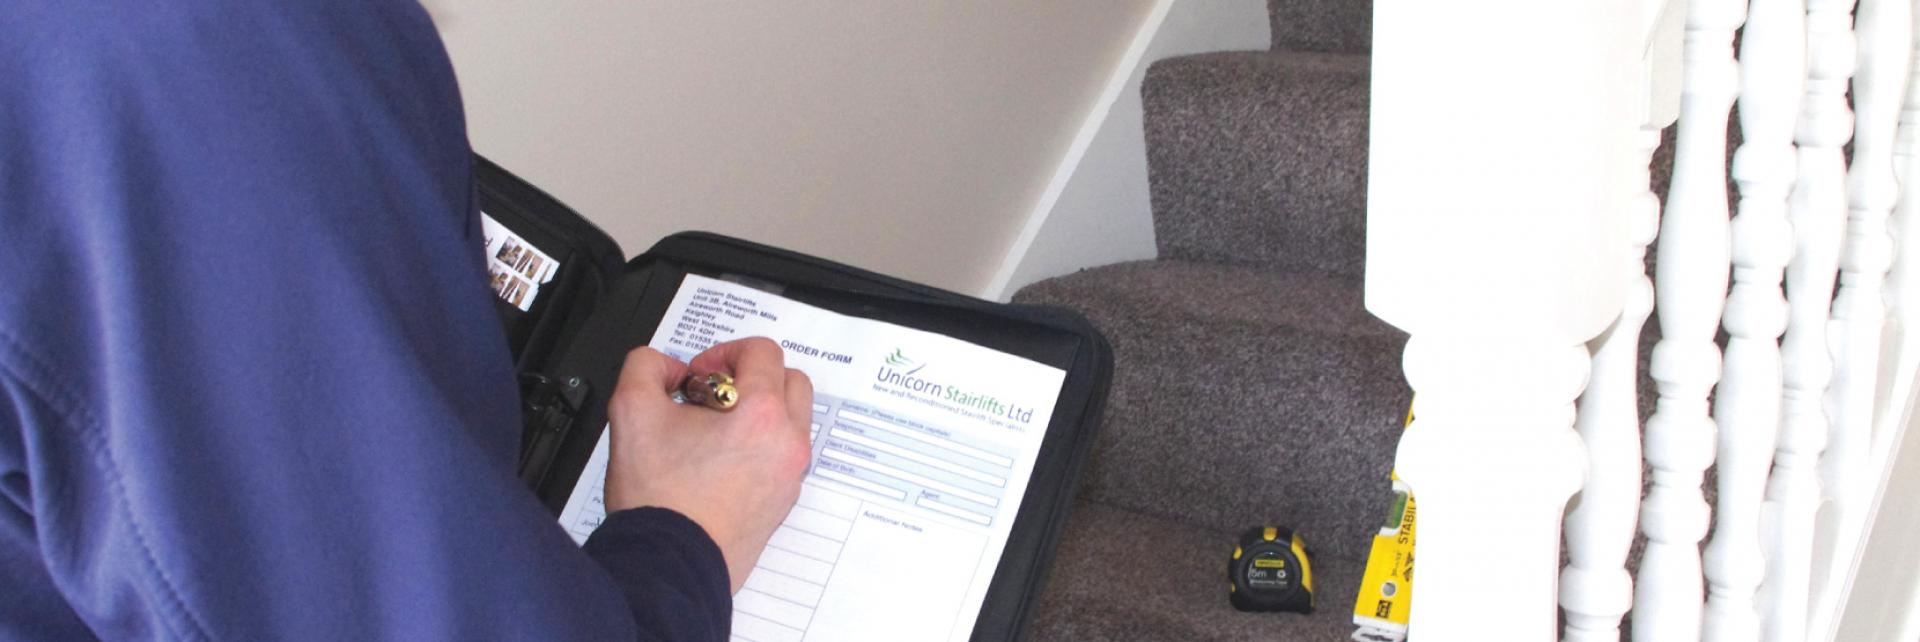 Stairlift survey